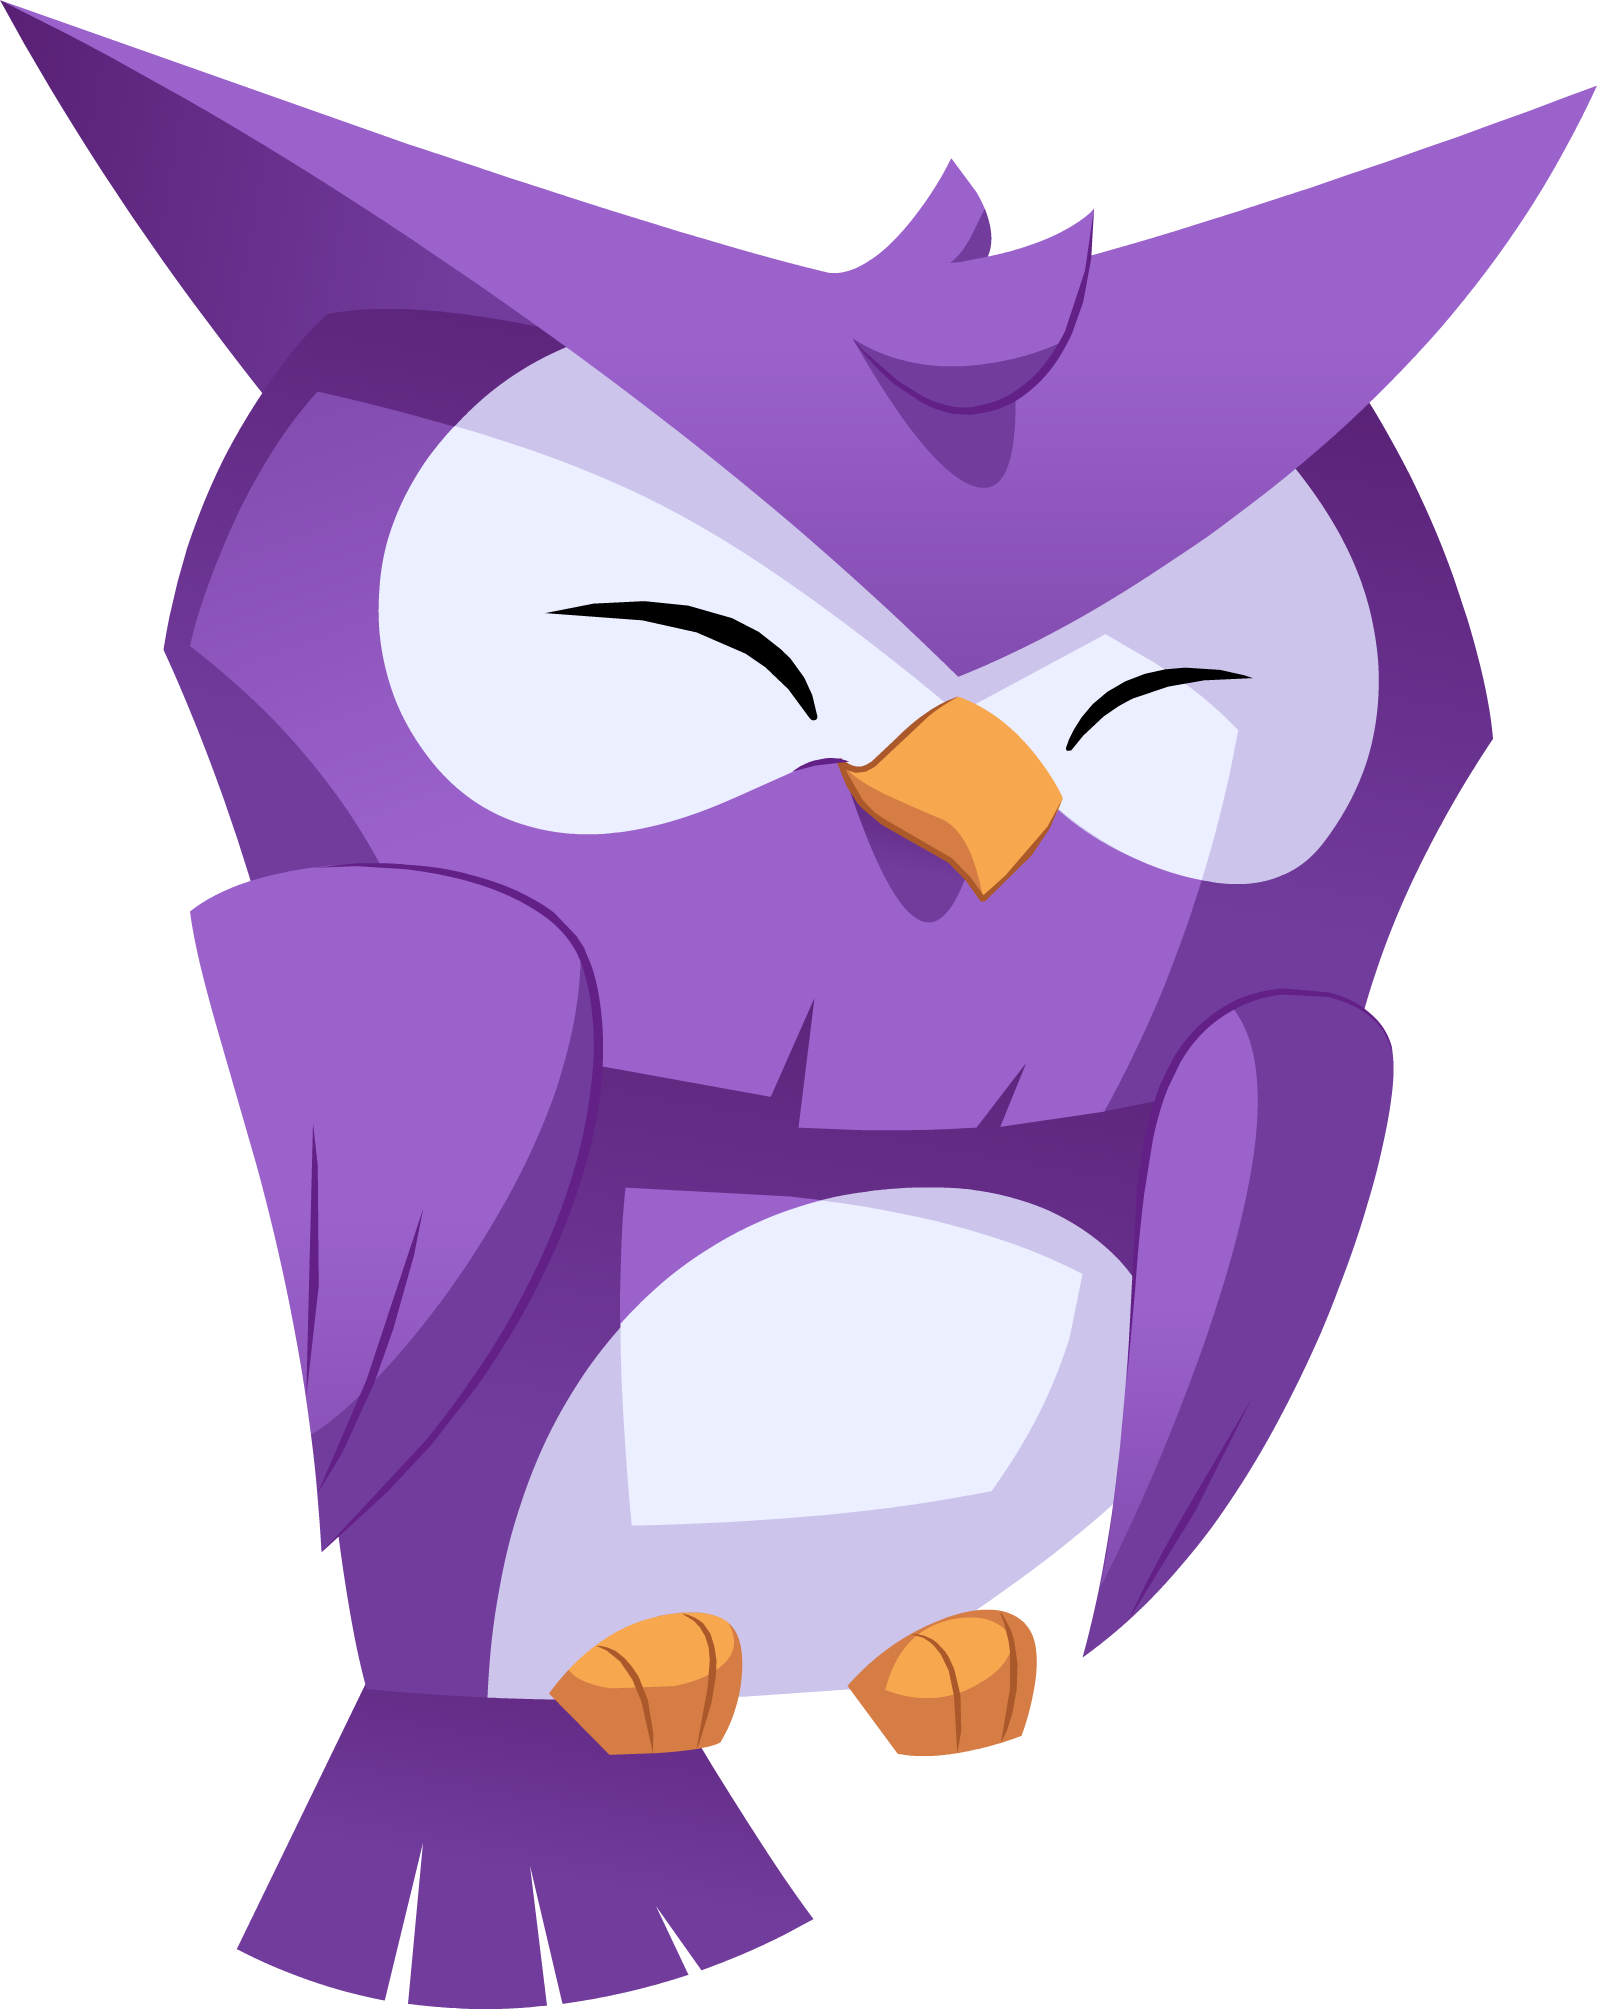 png library Transparent owl animal jam. Image purple png wiki